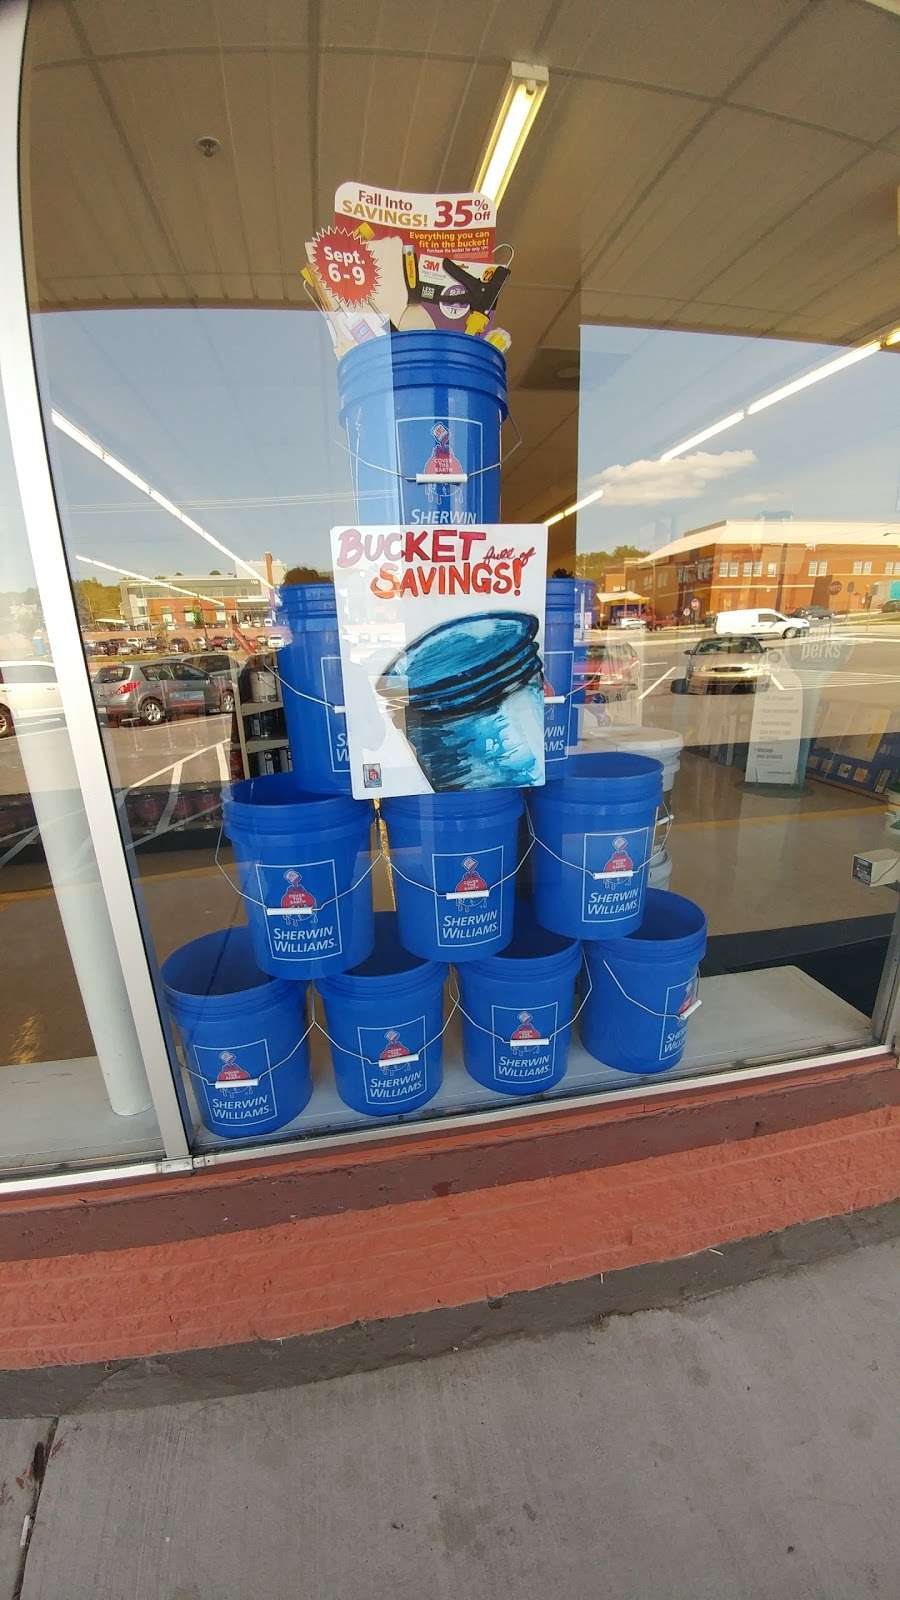 Sherwin-Williams Paint Store - home goods store  | Photo 5 of 7 | Address: 606A E Main St, Waynesboro, PA 17268, USA | Phone: (717) 762-3913